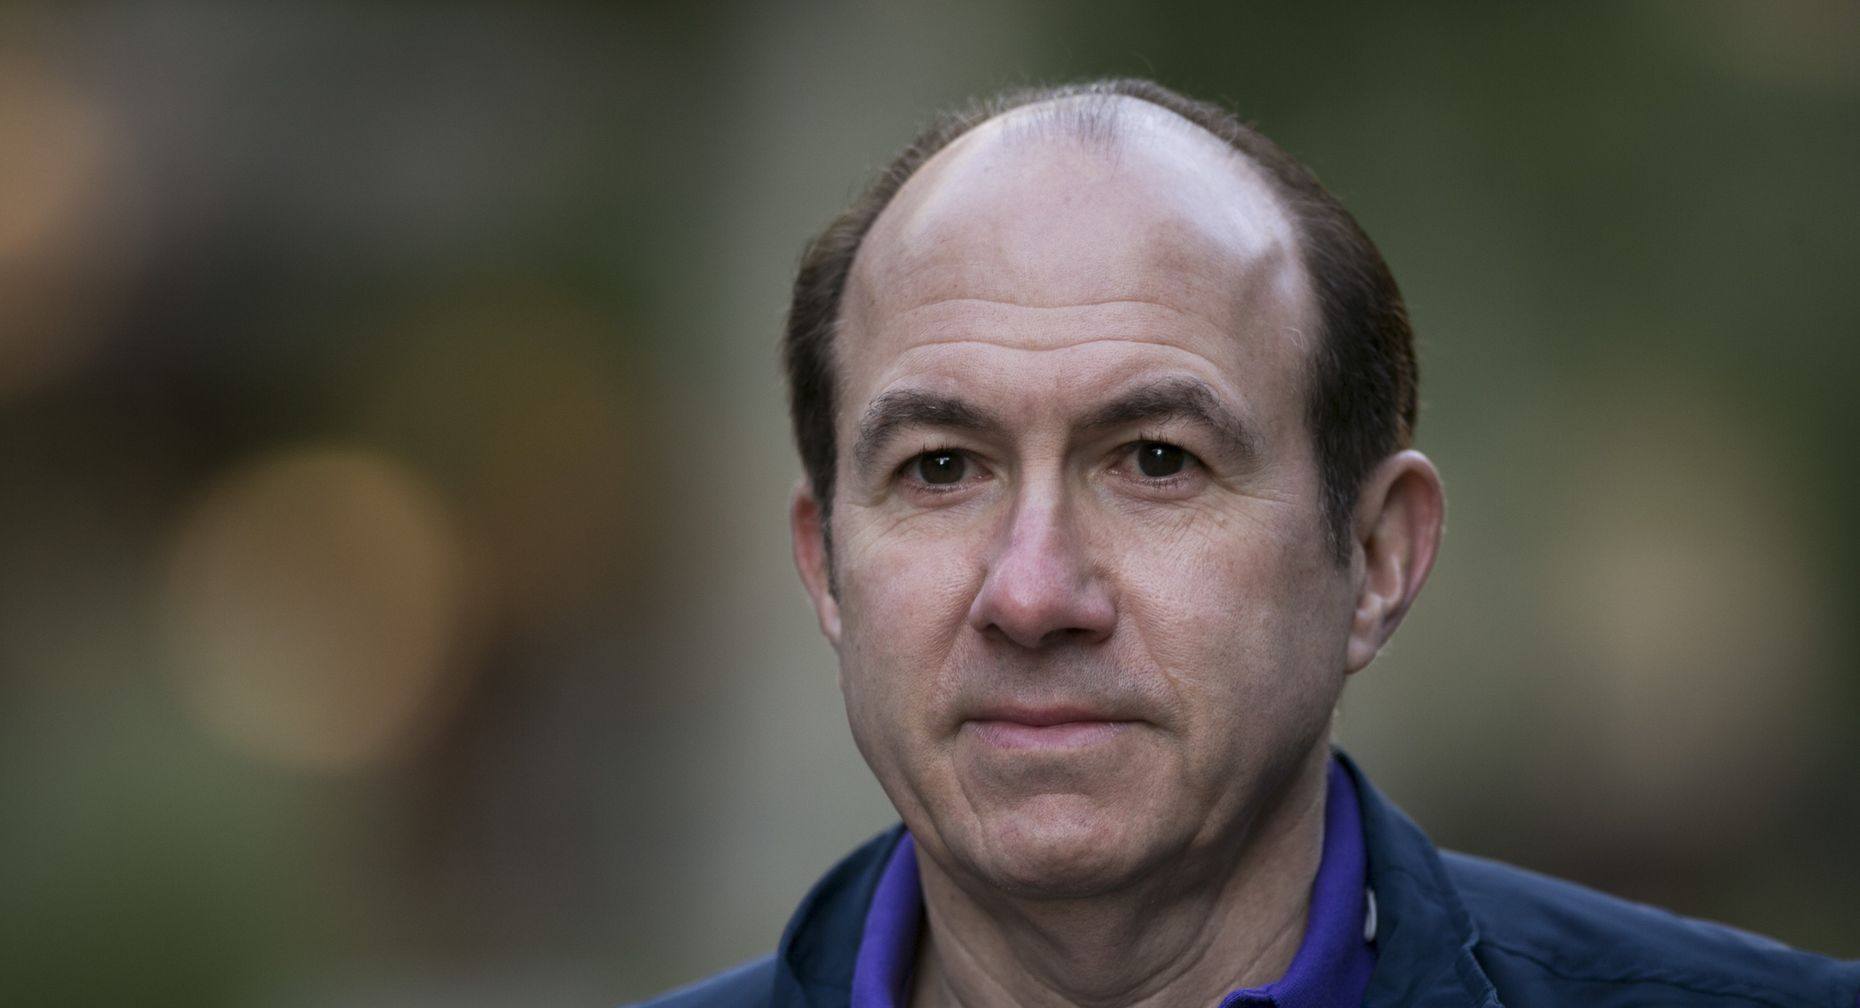 Viacom CEO Philippe Dauman. Photo by Bloomberg.